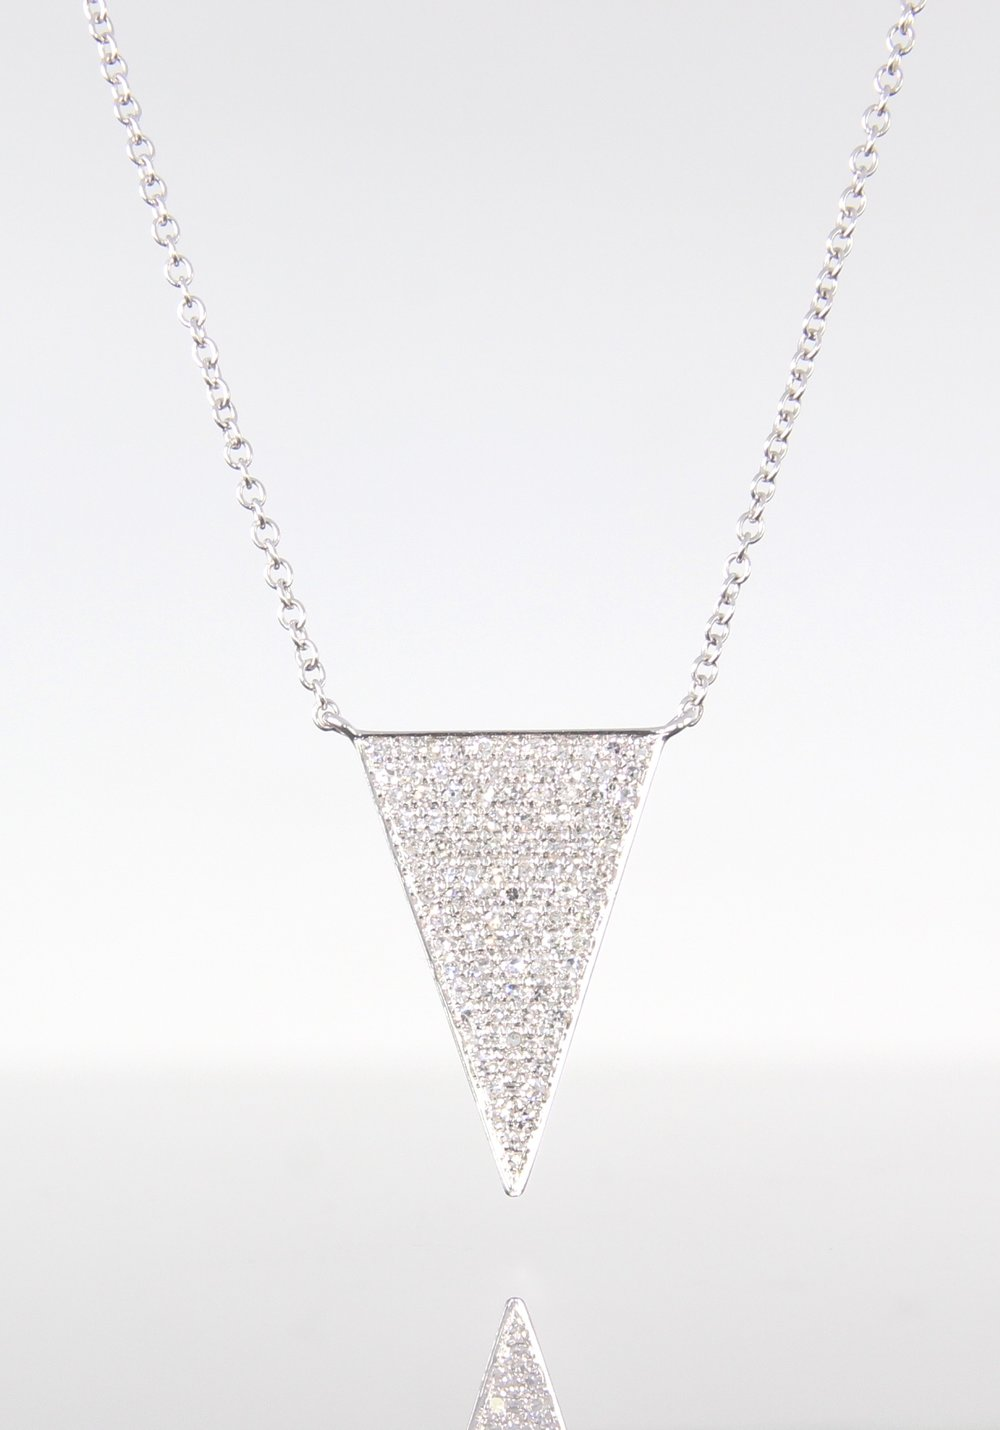 modern-diamond-triangle-drop-necklace-white-gold-craft-revival-jewelry-store-grand-rapids.jpg